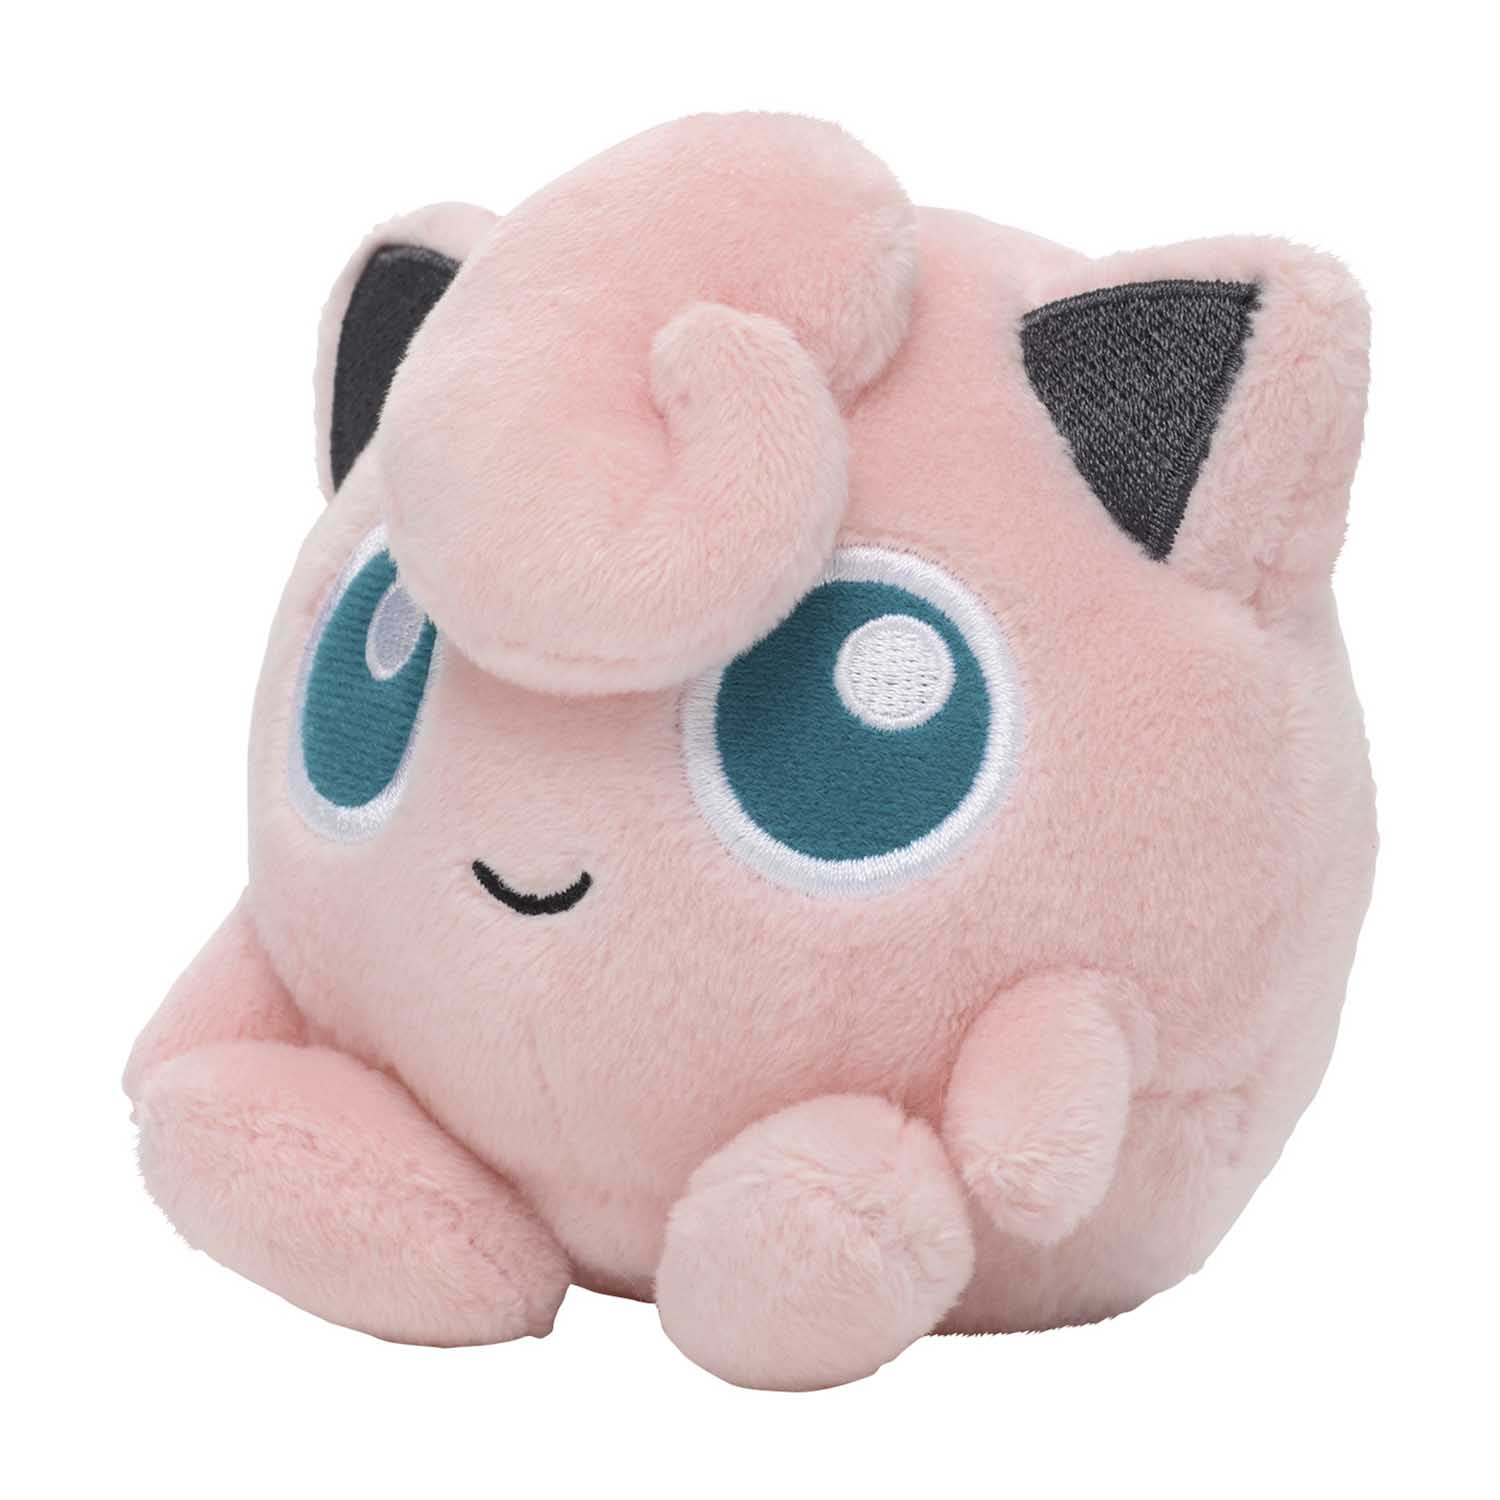 Jigglypuff Sitting Cuties Plush - 3 1/2 In. | Pokémon ...